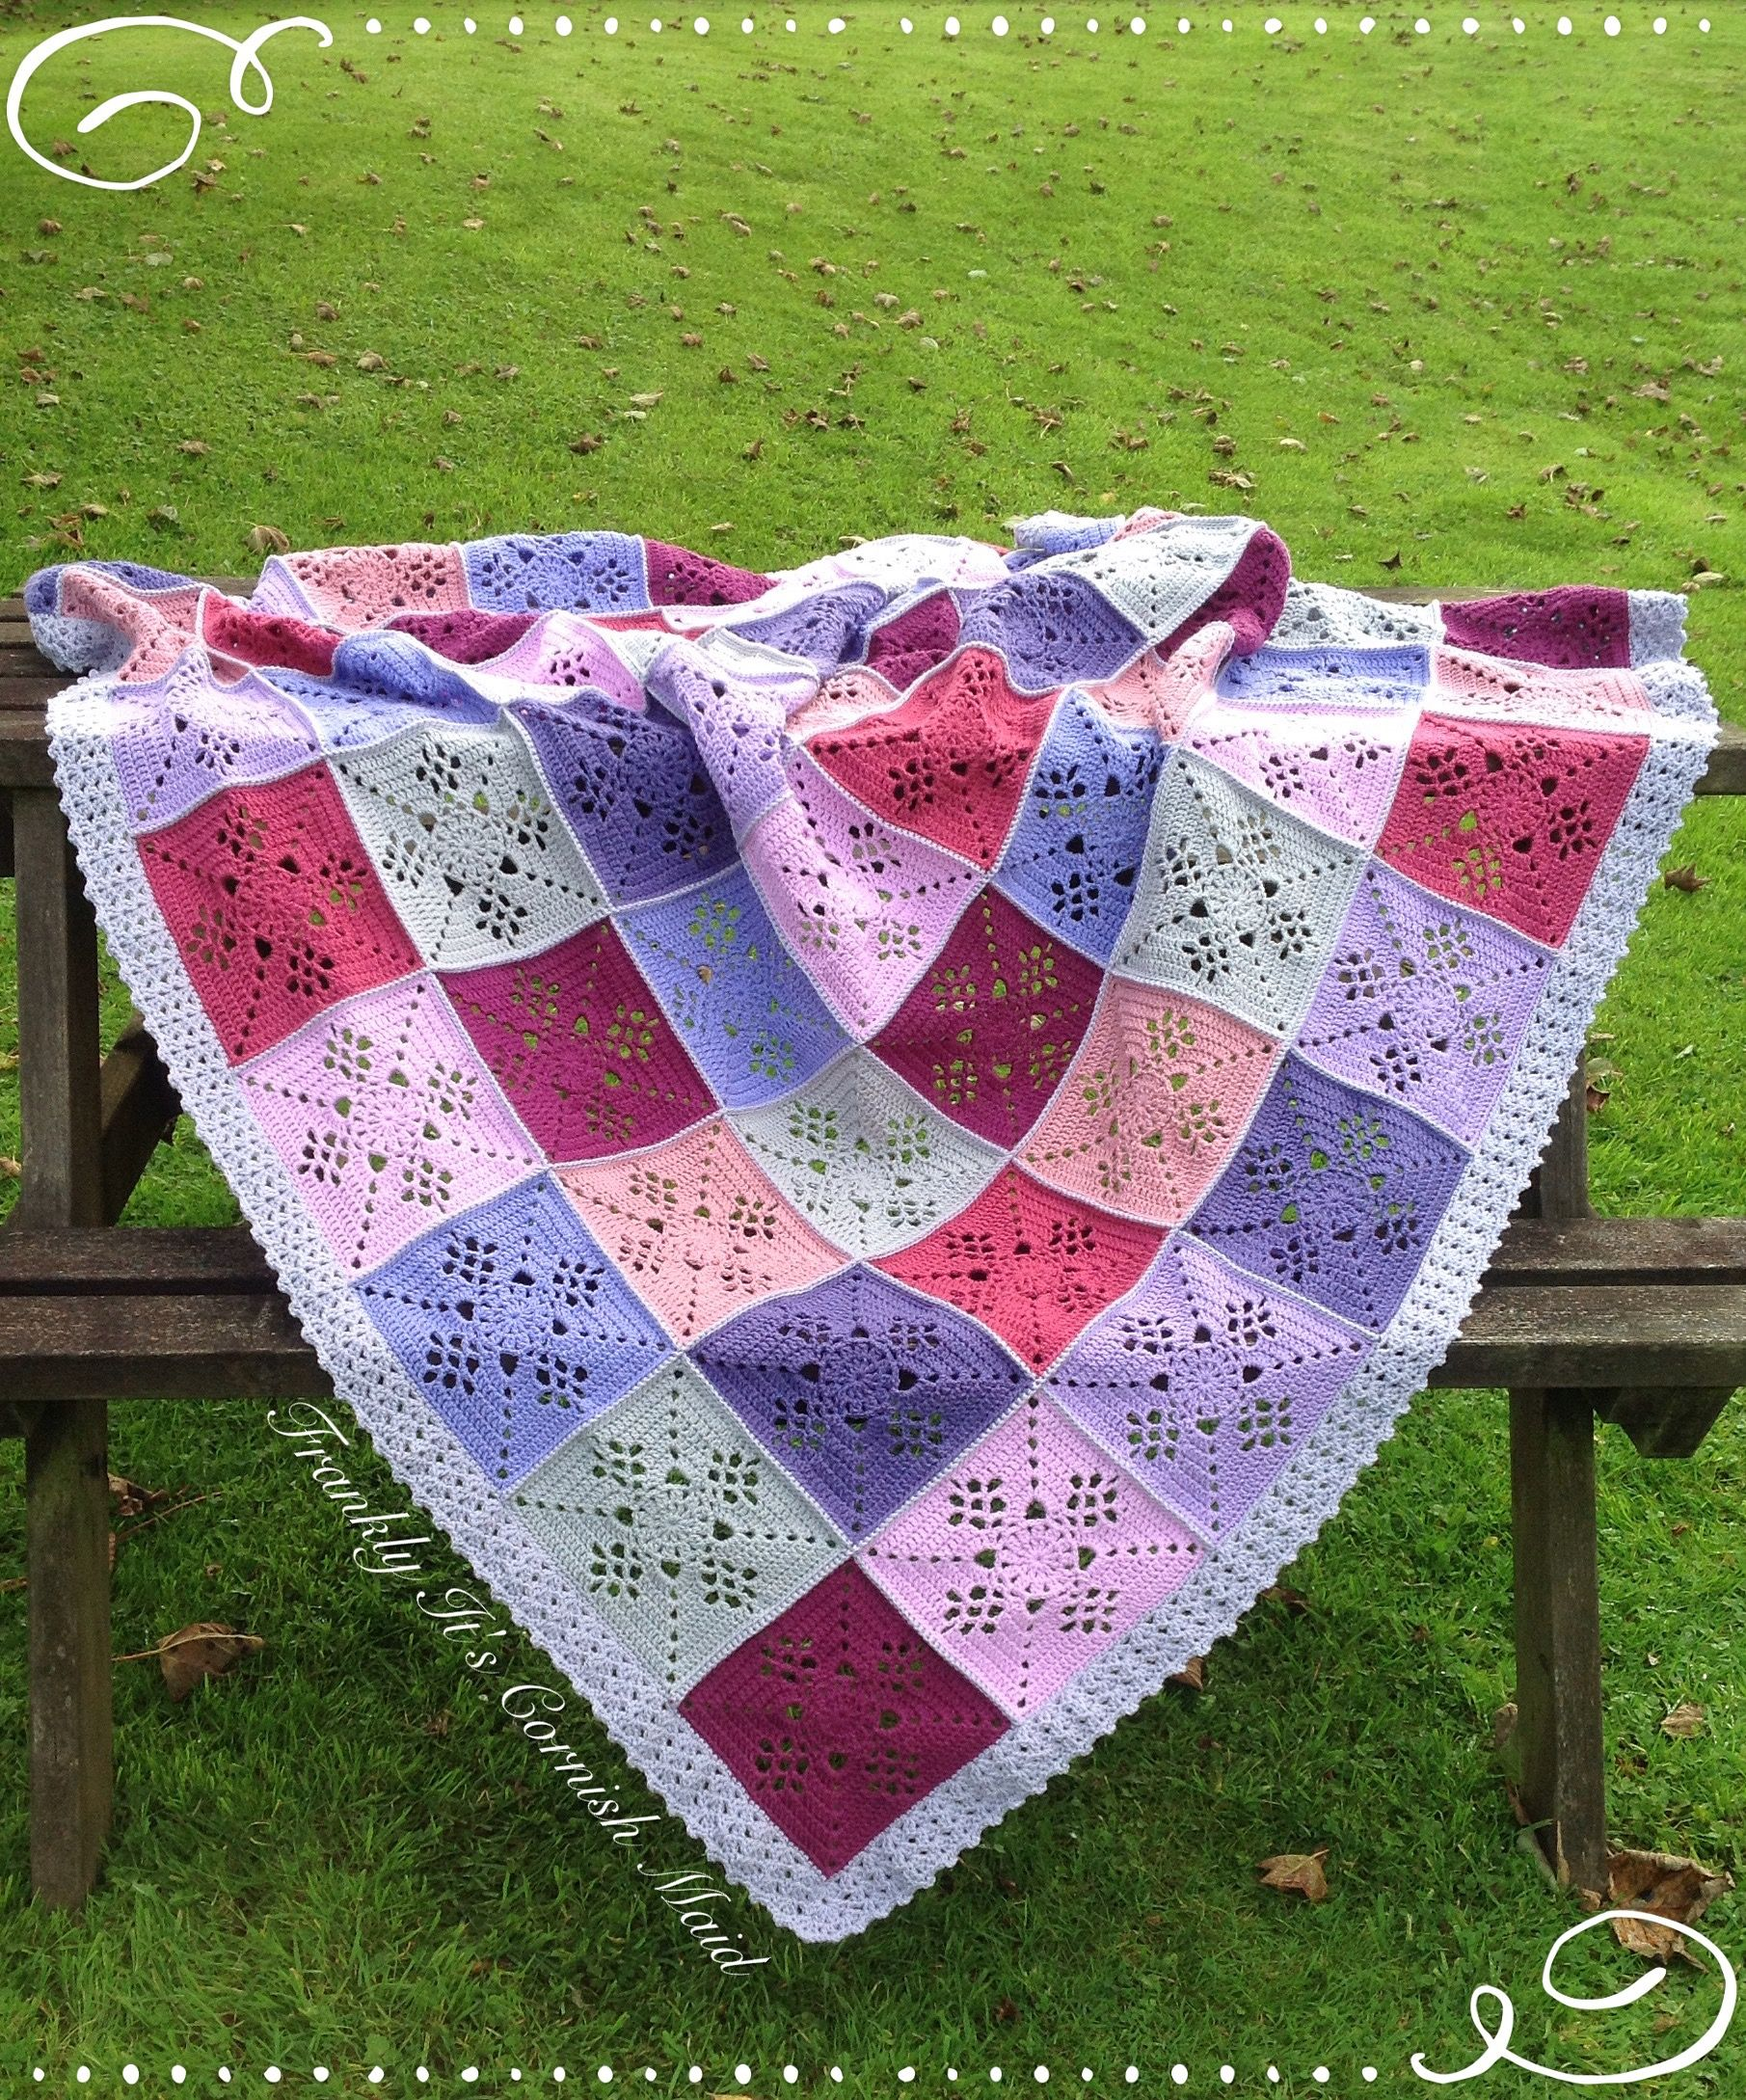 Victorian Lattice square blanket by Dystany Wymore. Made to order ...